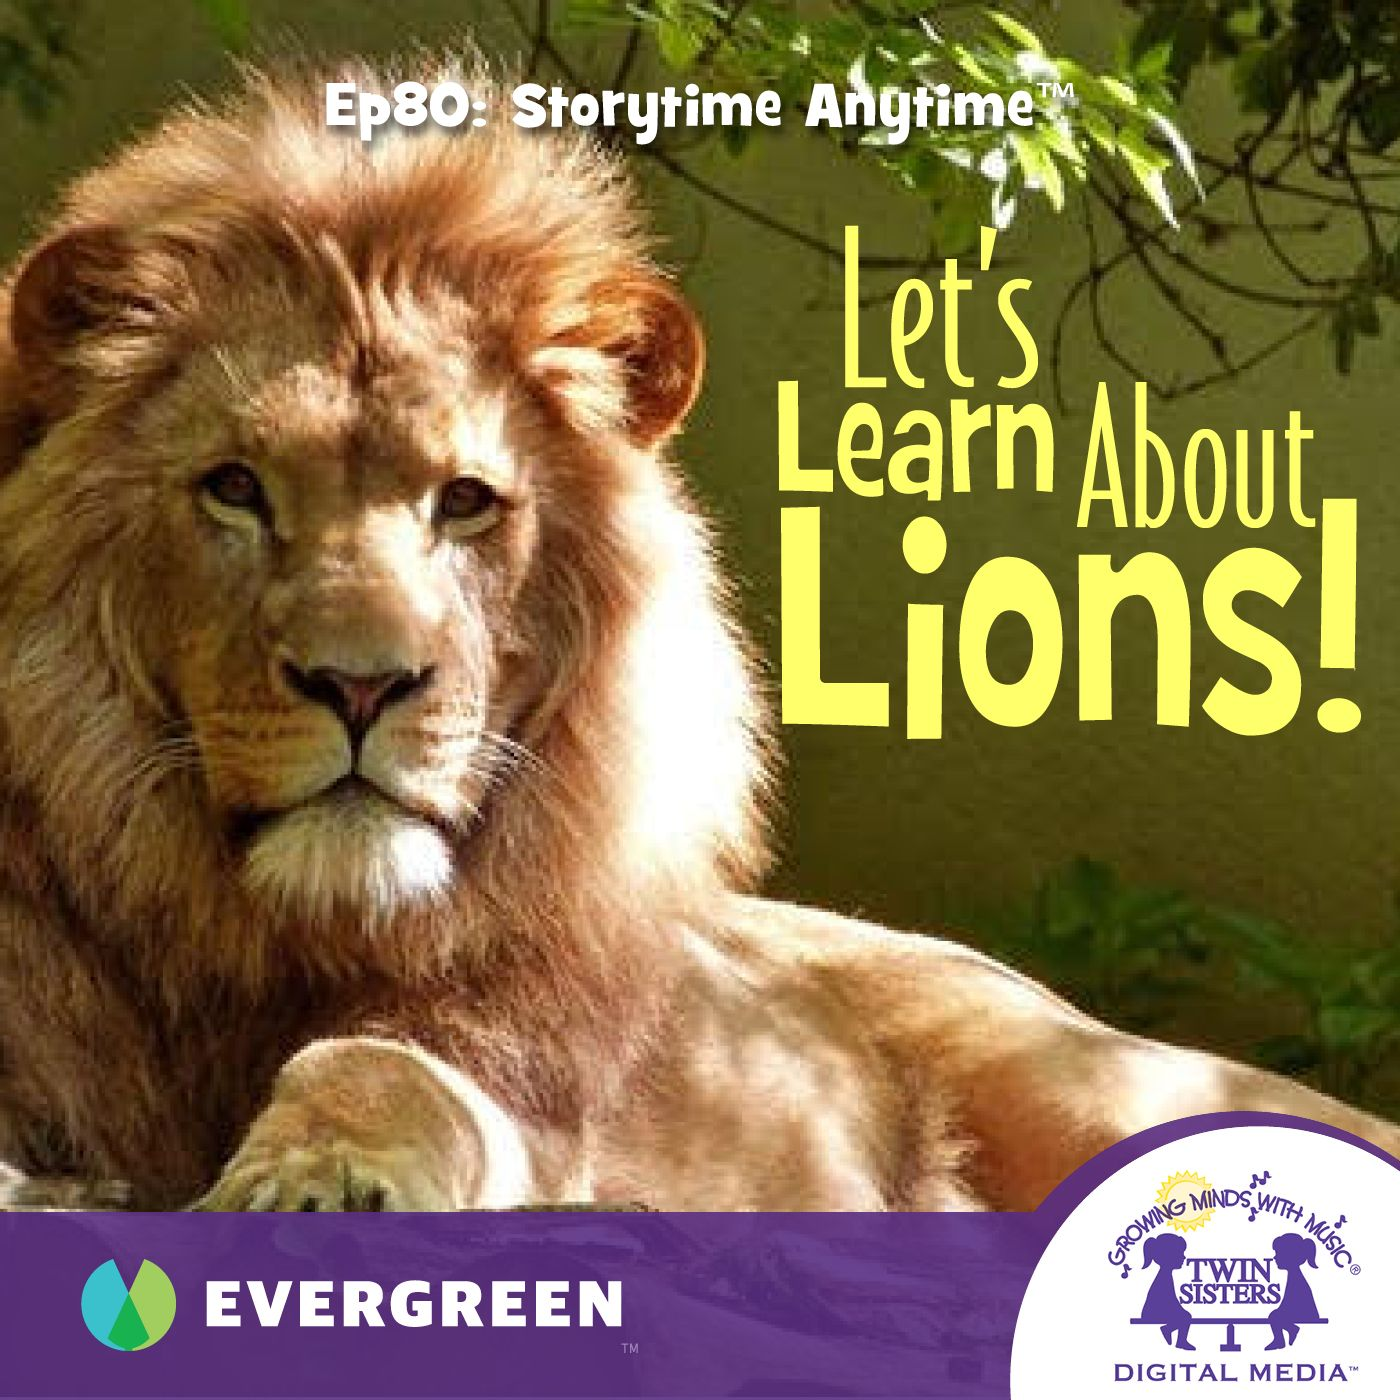 Let's Learn About Lions!